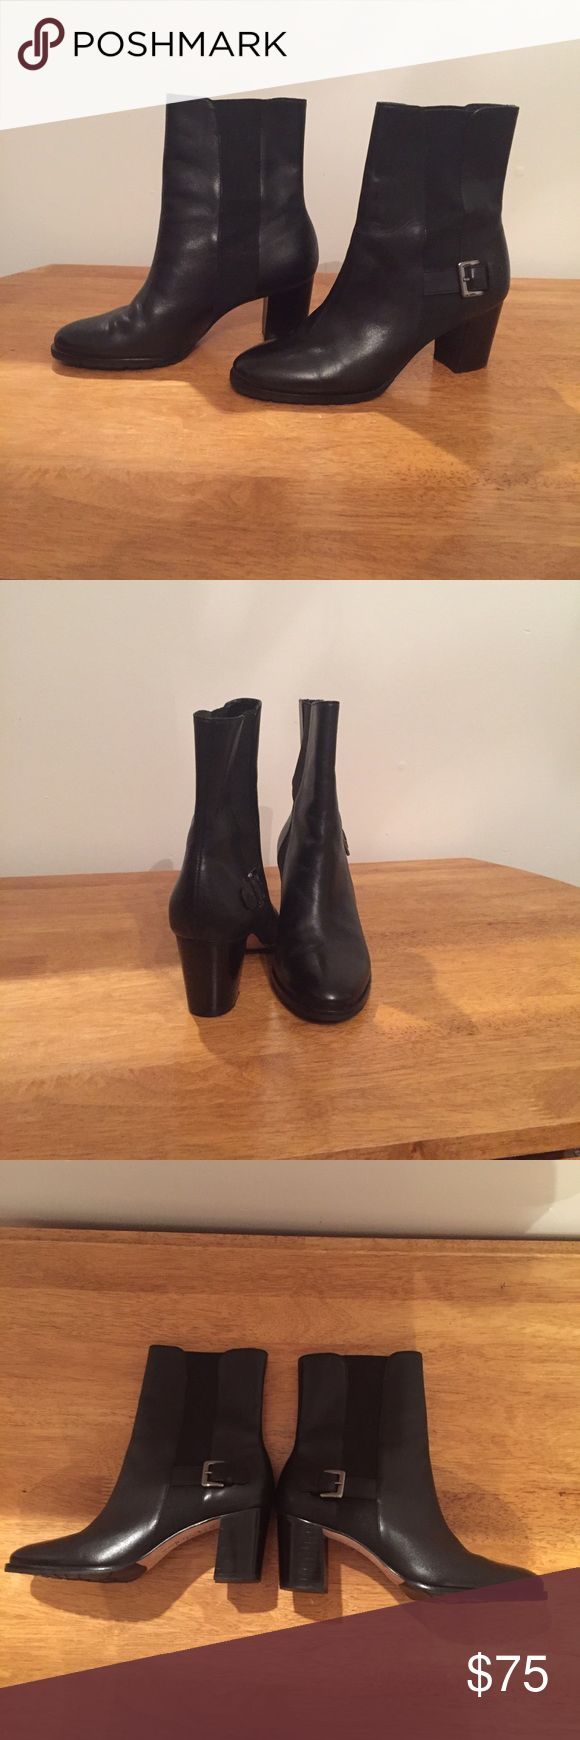 Cole Haan black leather ankle boots 7.5 Cole Haan black leather ankle boots 7.5 with decorative buckle and pull on style Cole Haan Shoes Ankle Boots & Booties